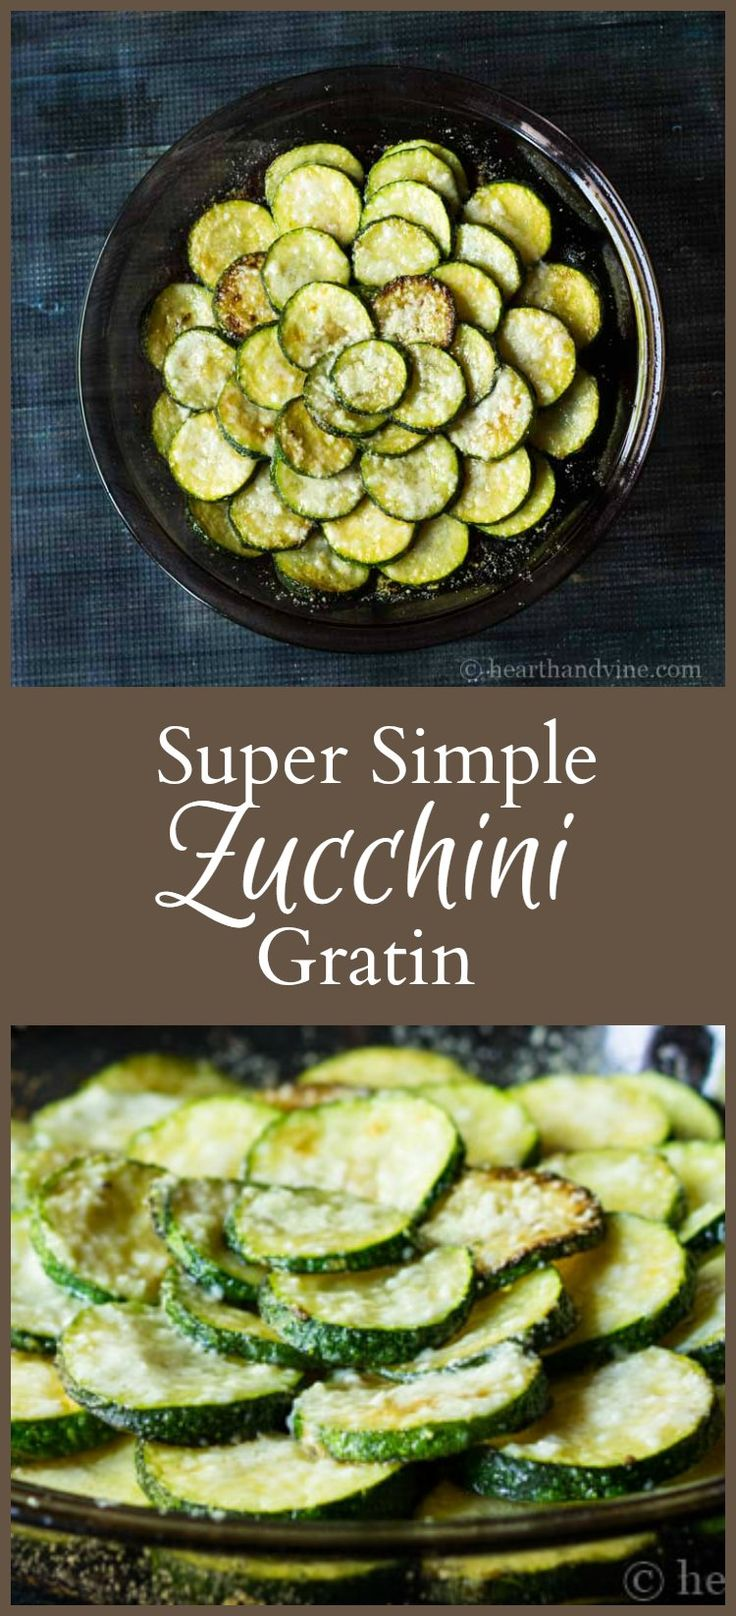 This super simple zucchini gratin super tasty and easy enough to make any day of the week. It's also pretty enough to serve to your favorite guests.